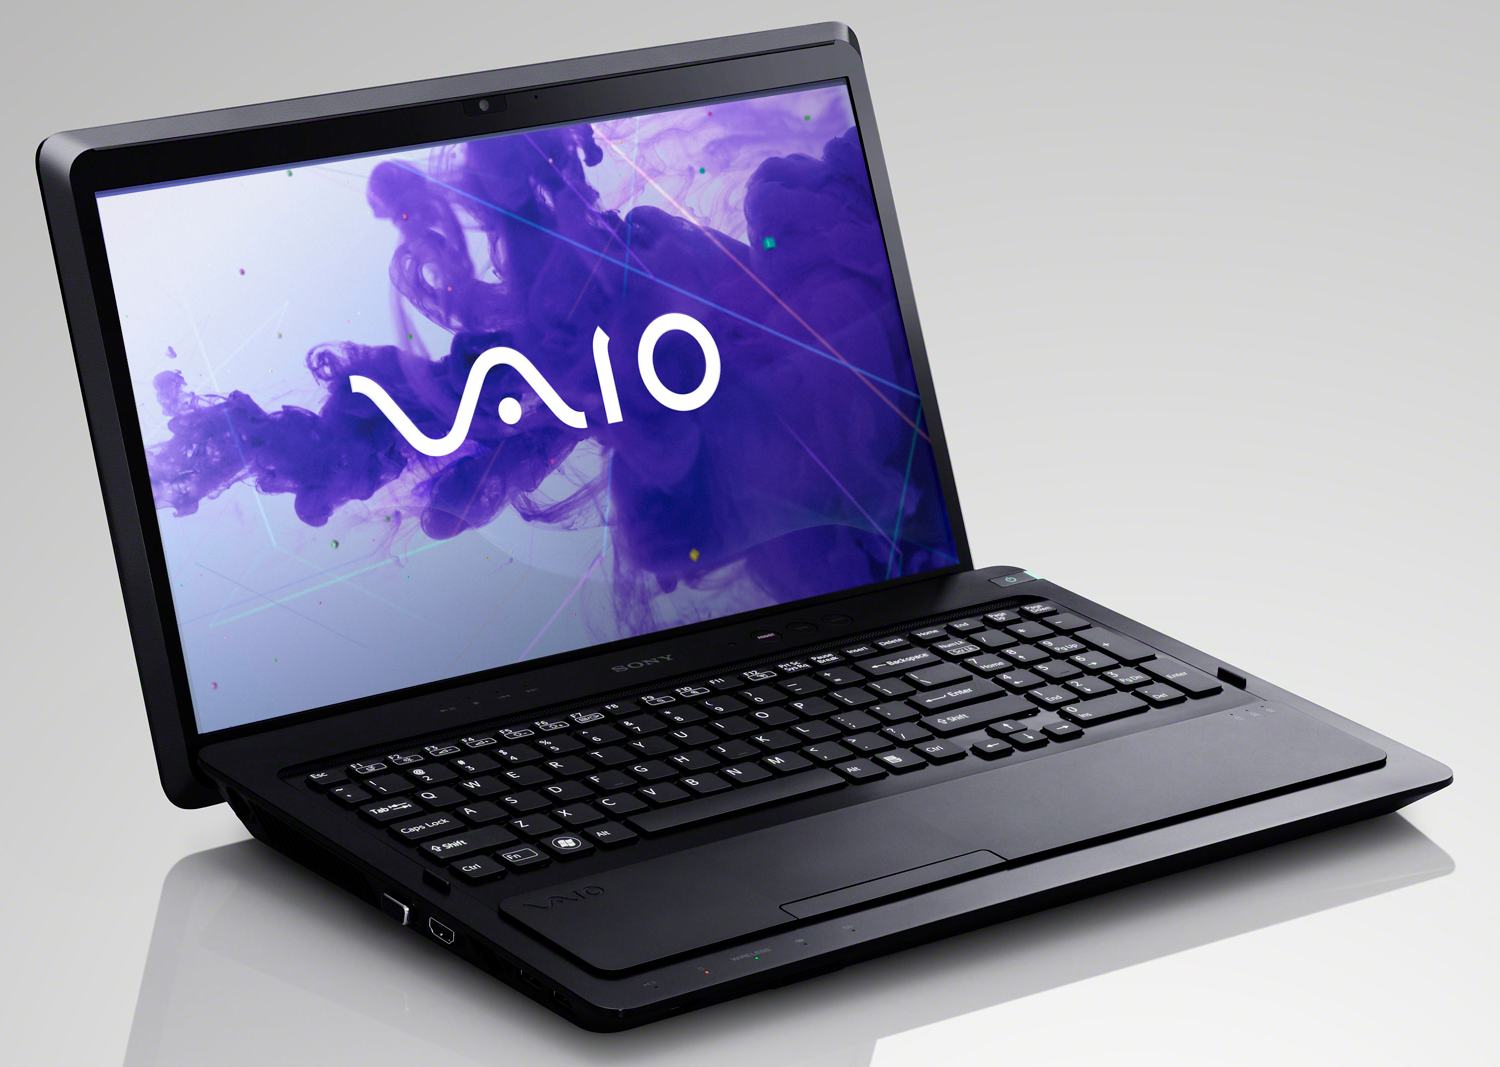 SONY VAIO VPCF215FXBI LOCATION WINDOWS 7 DRIVERS DOWNLOAD